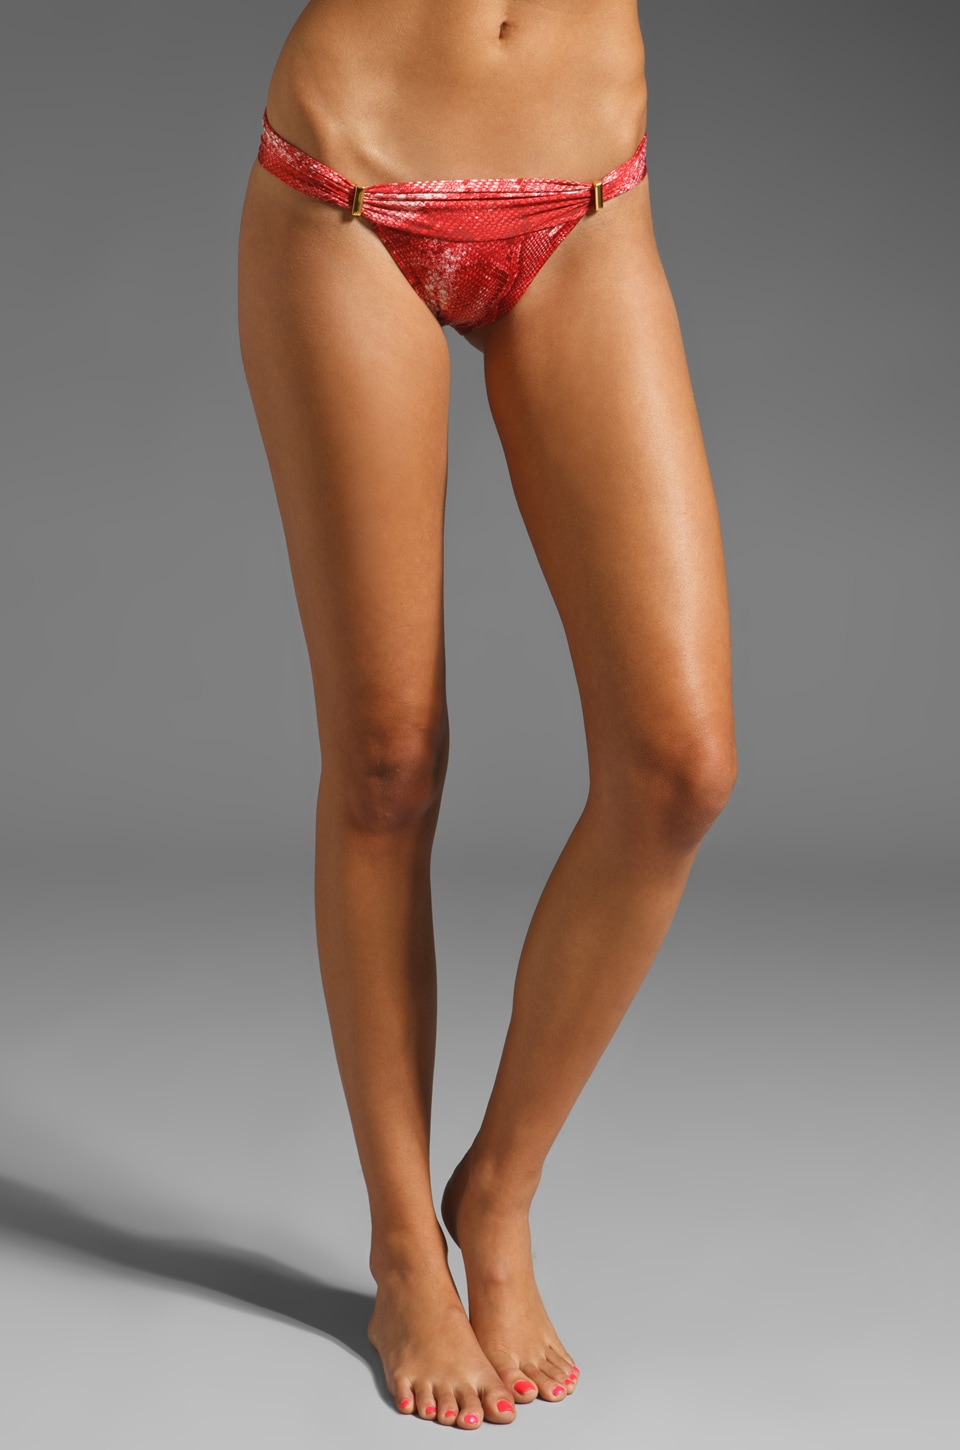 Vix Swimwear Tunisia New Band with Access Bikini Bottom in Red